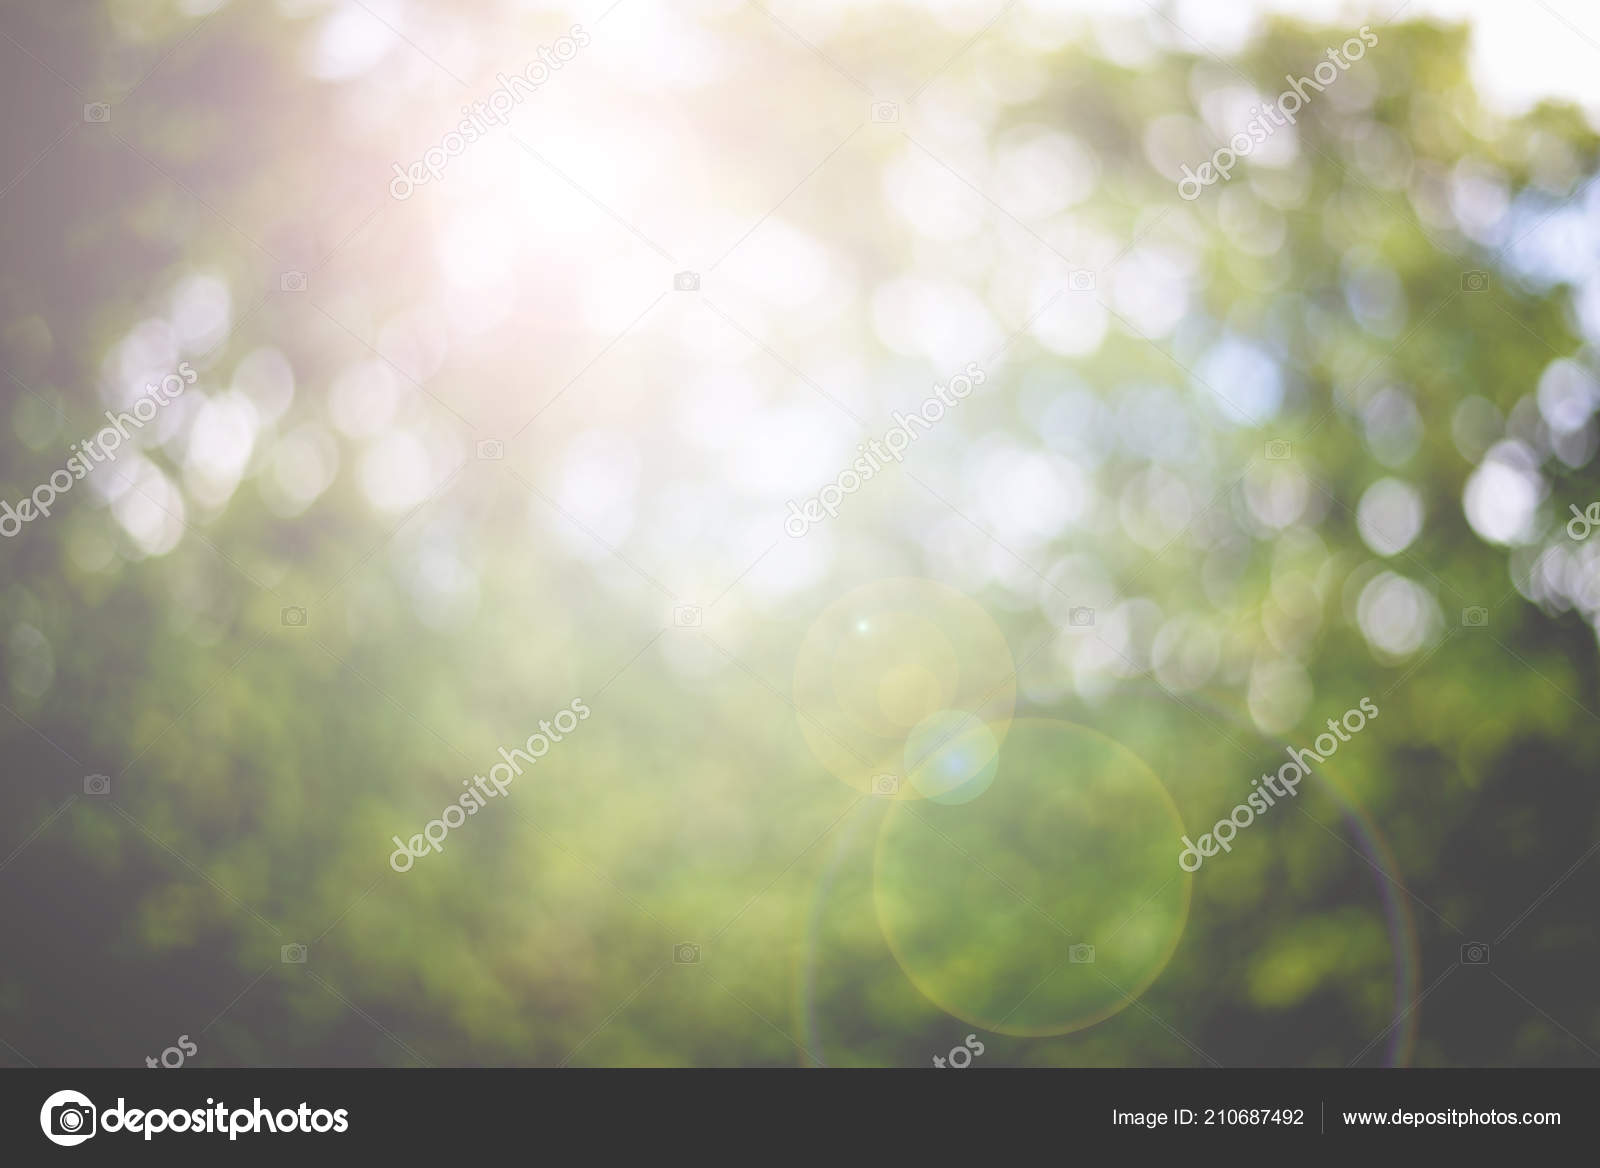 abstract nature blur background lens flare beauty bokeh green